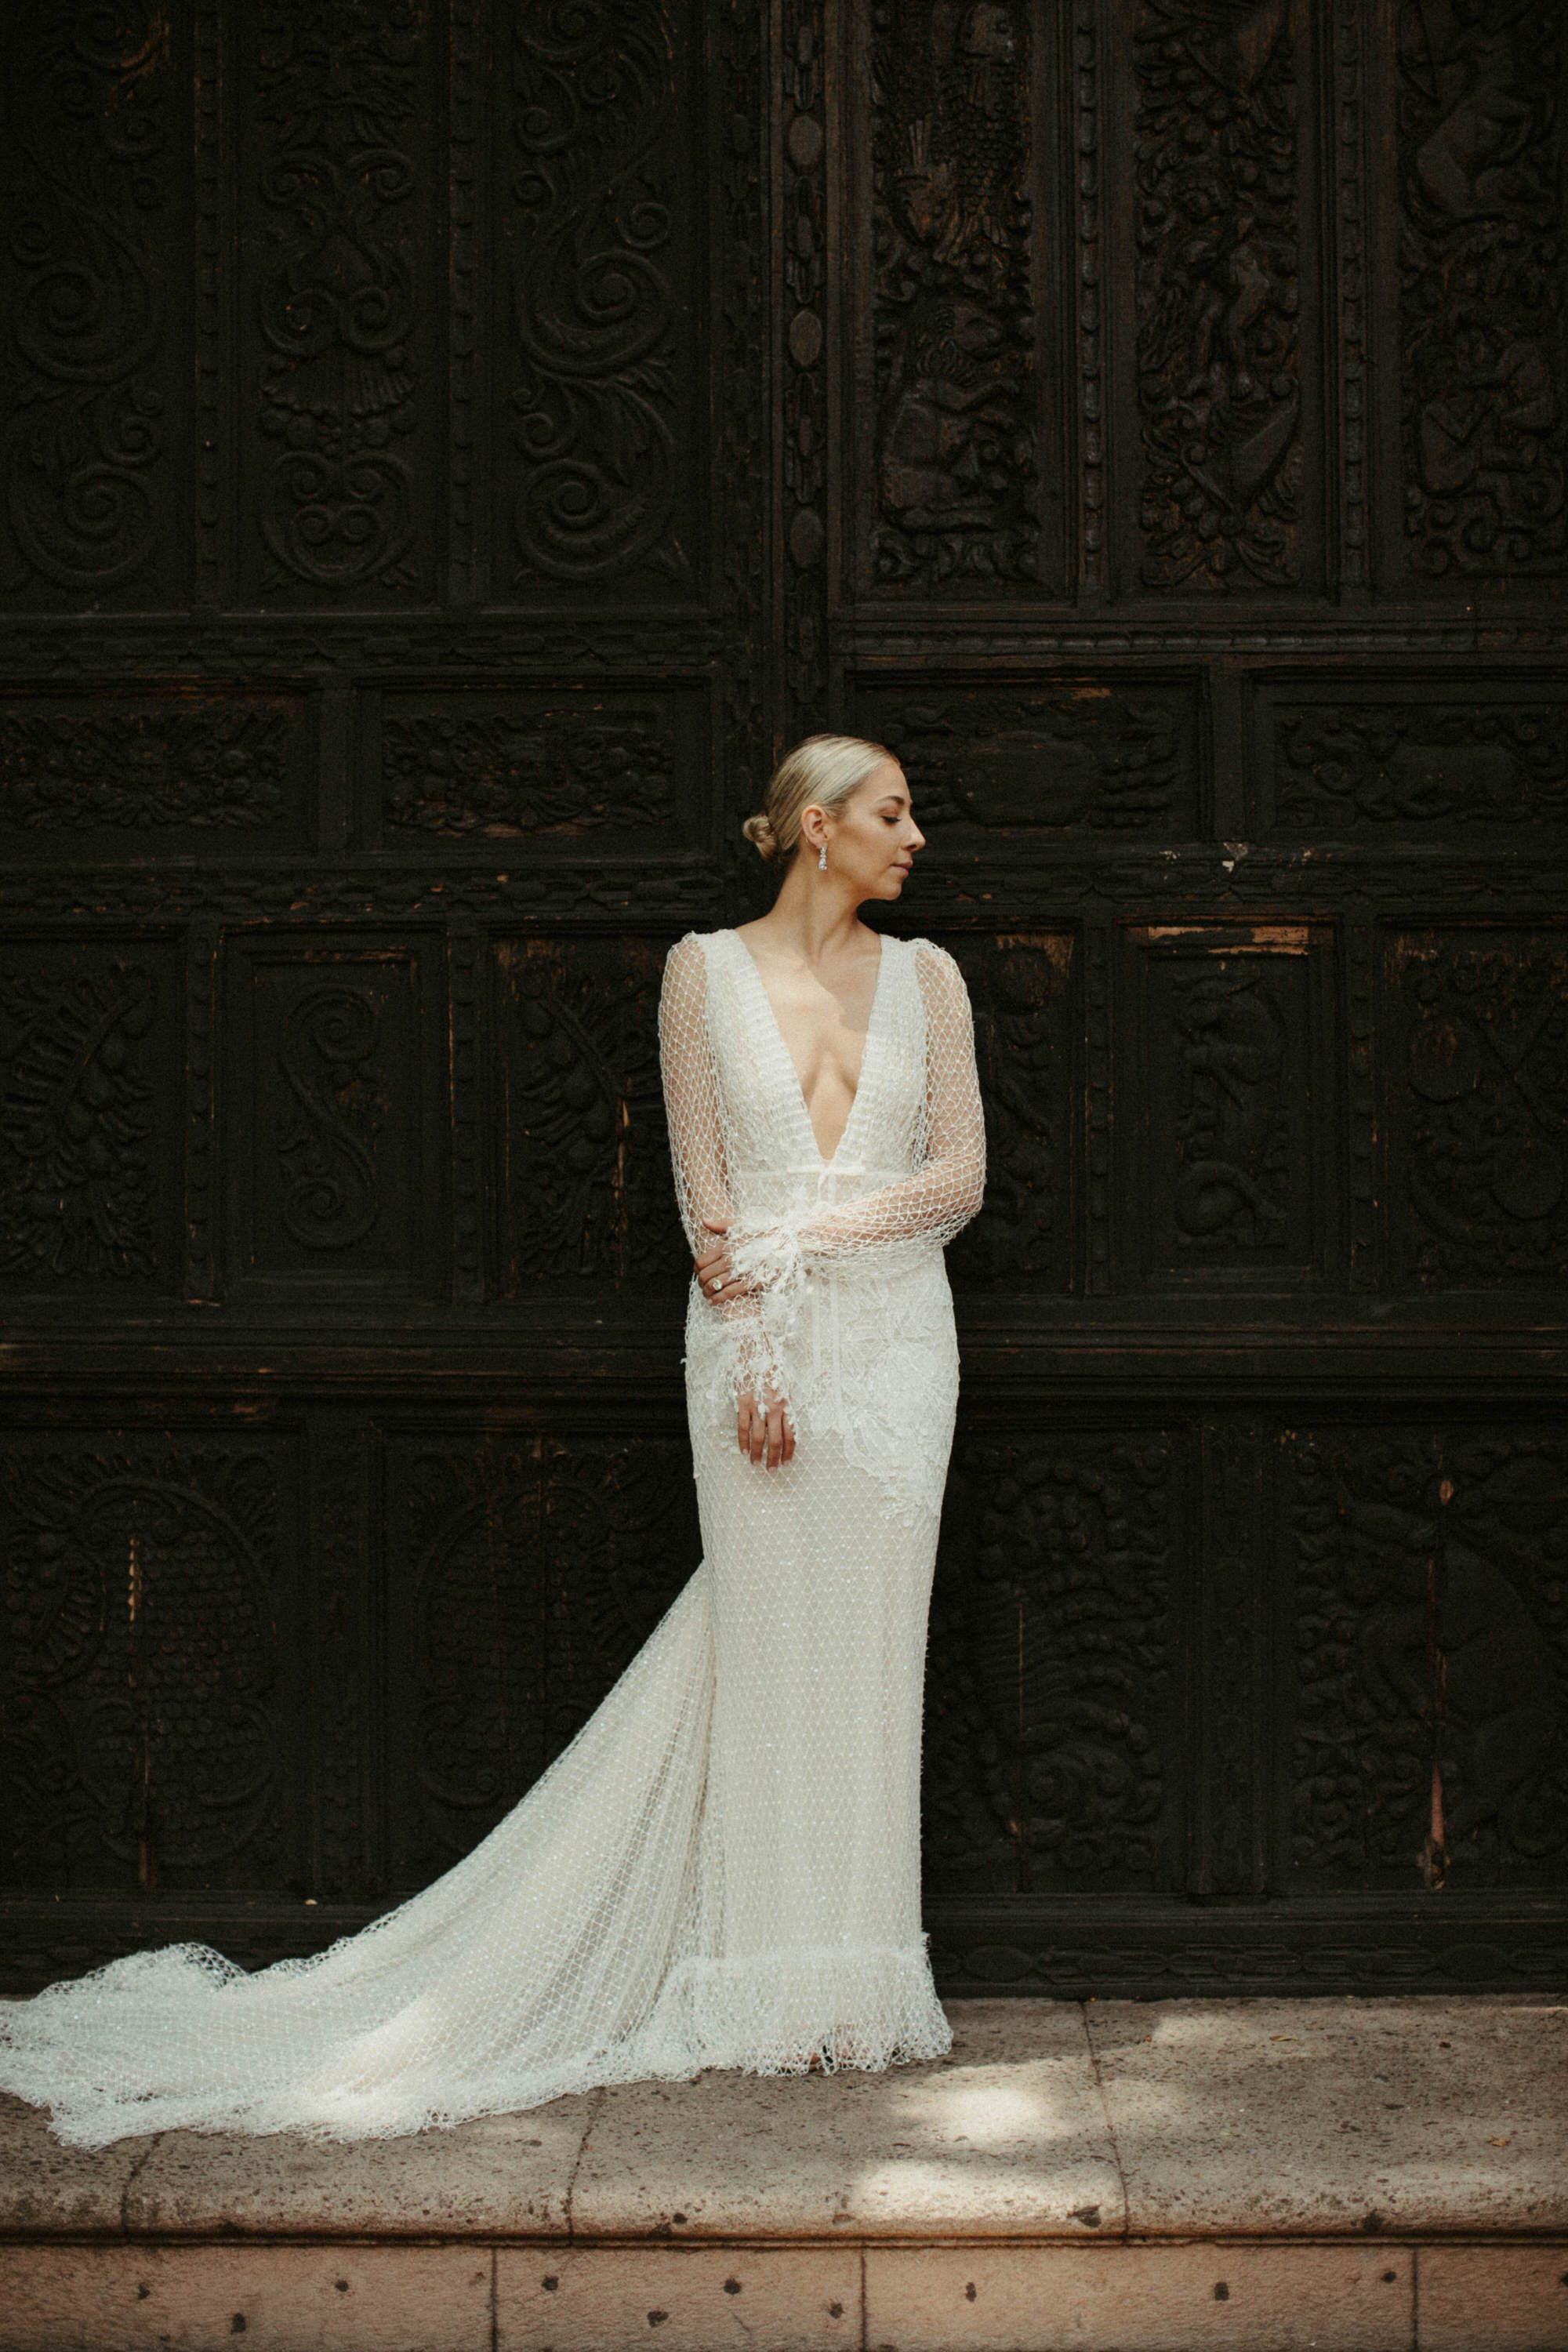 bridal portraits in front of old big black door